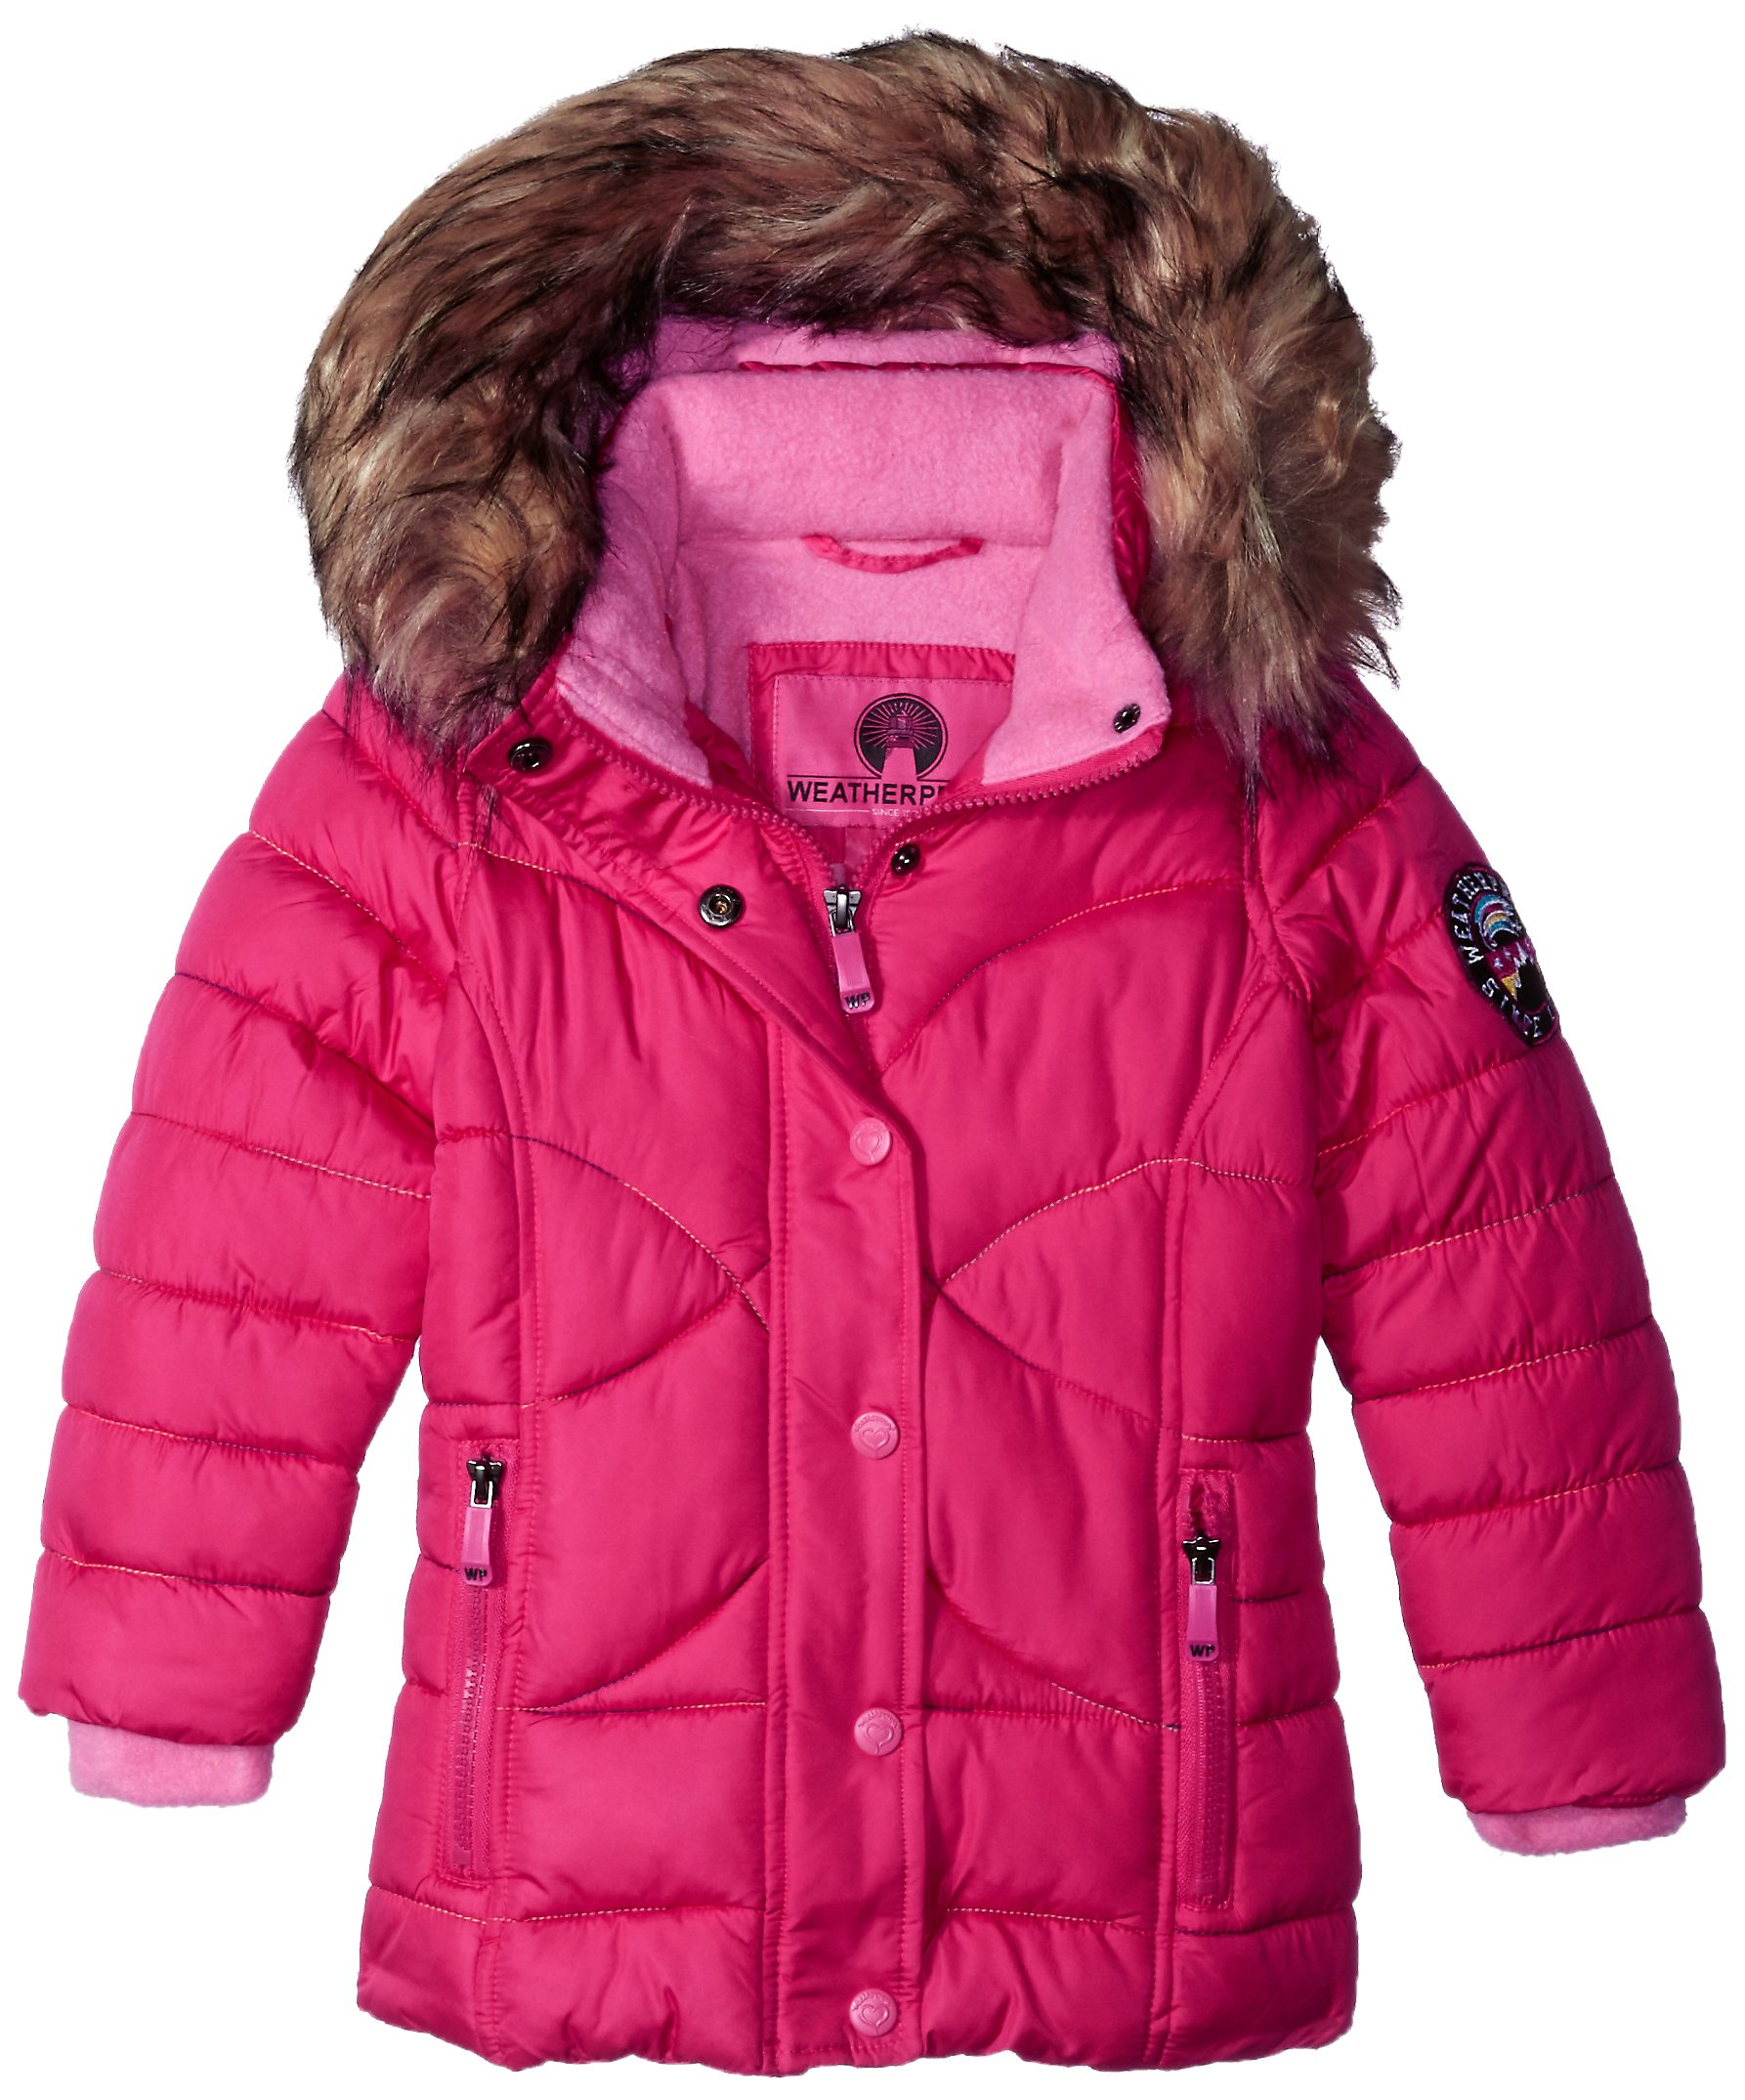 Weatherproof Big Girls' Outerwear Jacket (More Styles Available), Rainbow Stitch-WG149-Fuchsia, 14/16